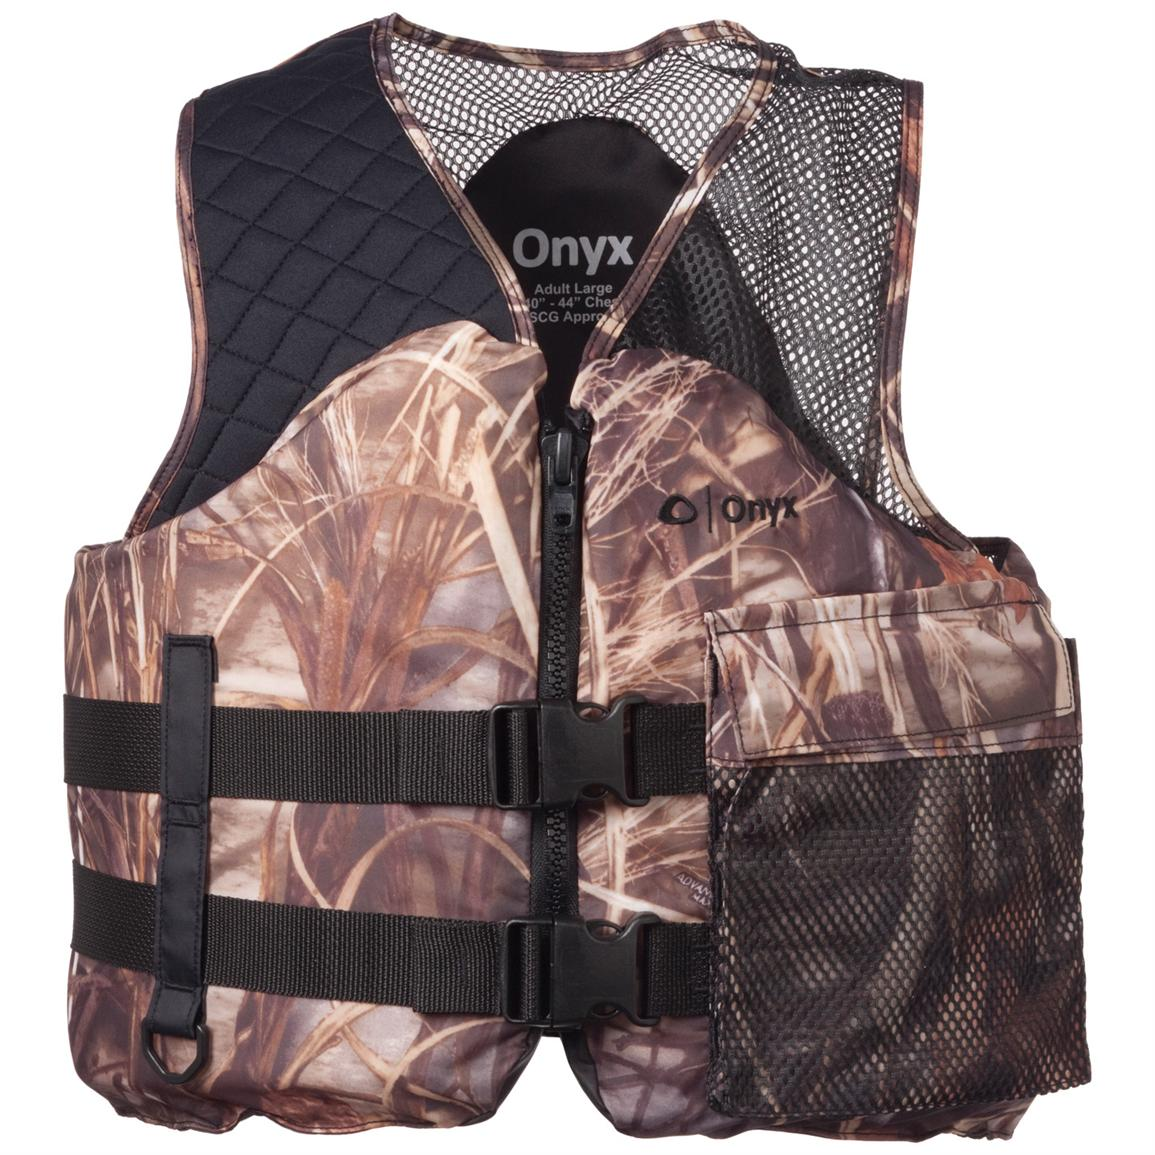 Adult Mesh Classic Camo Life Vest from Onyx®, Realtree Max-4®